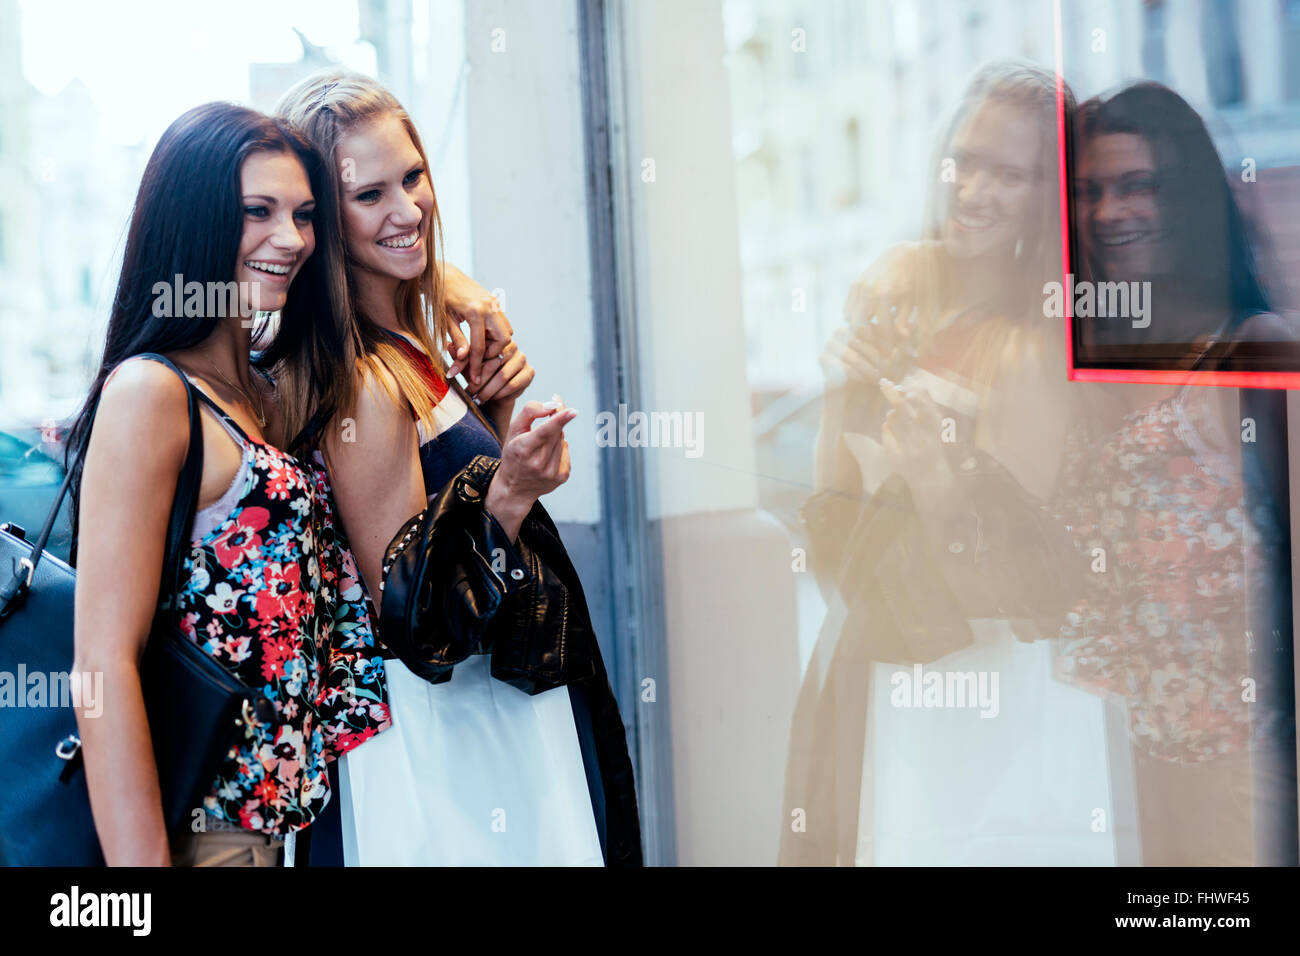 Two beautiful women shopping and looking at storefronts - Stock Image